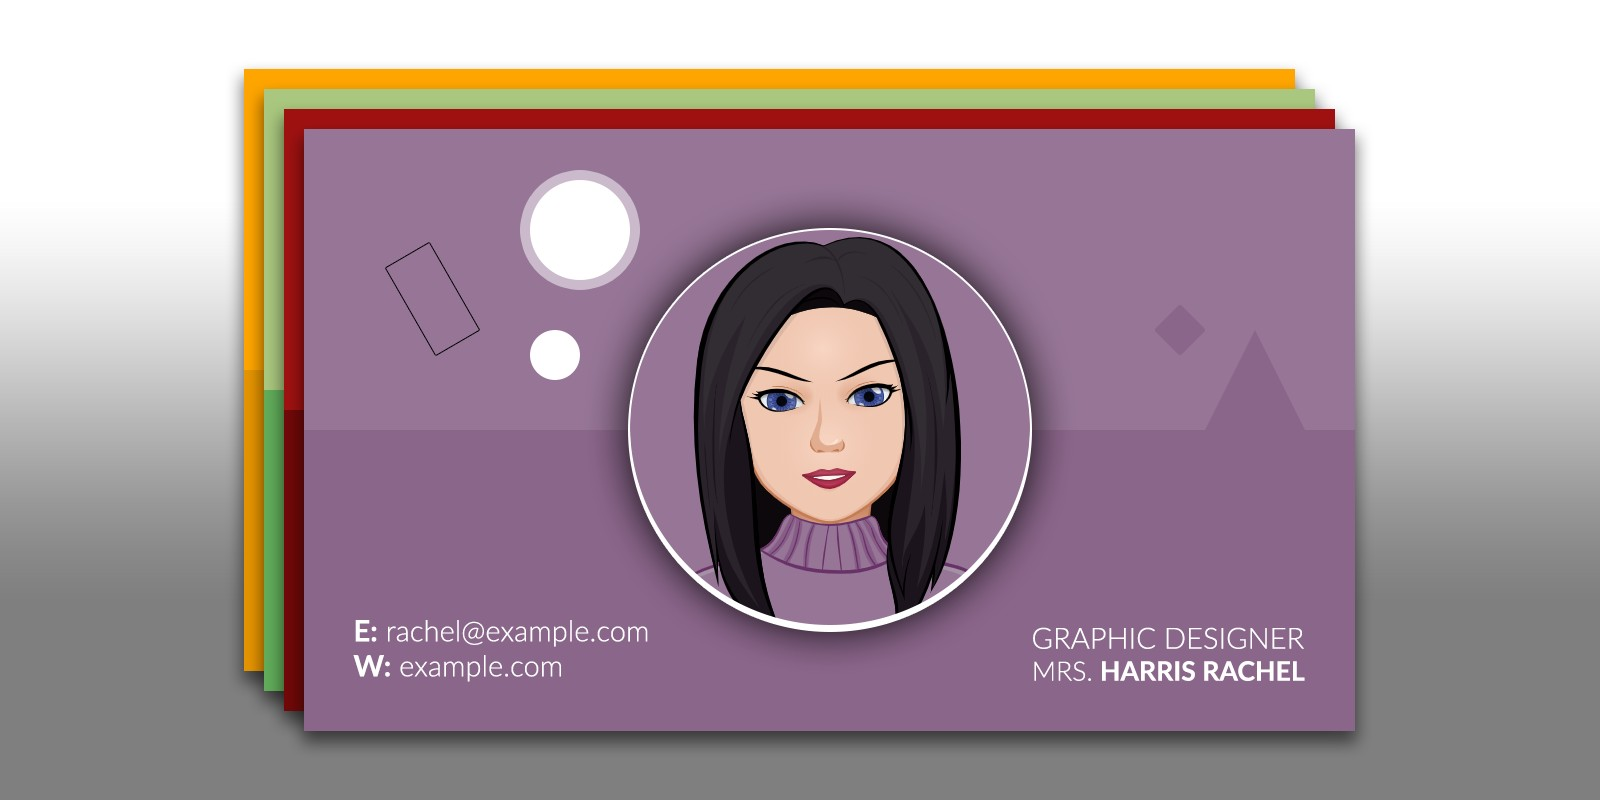 Your professional Business card